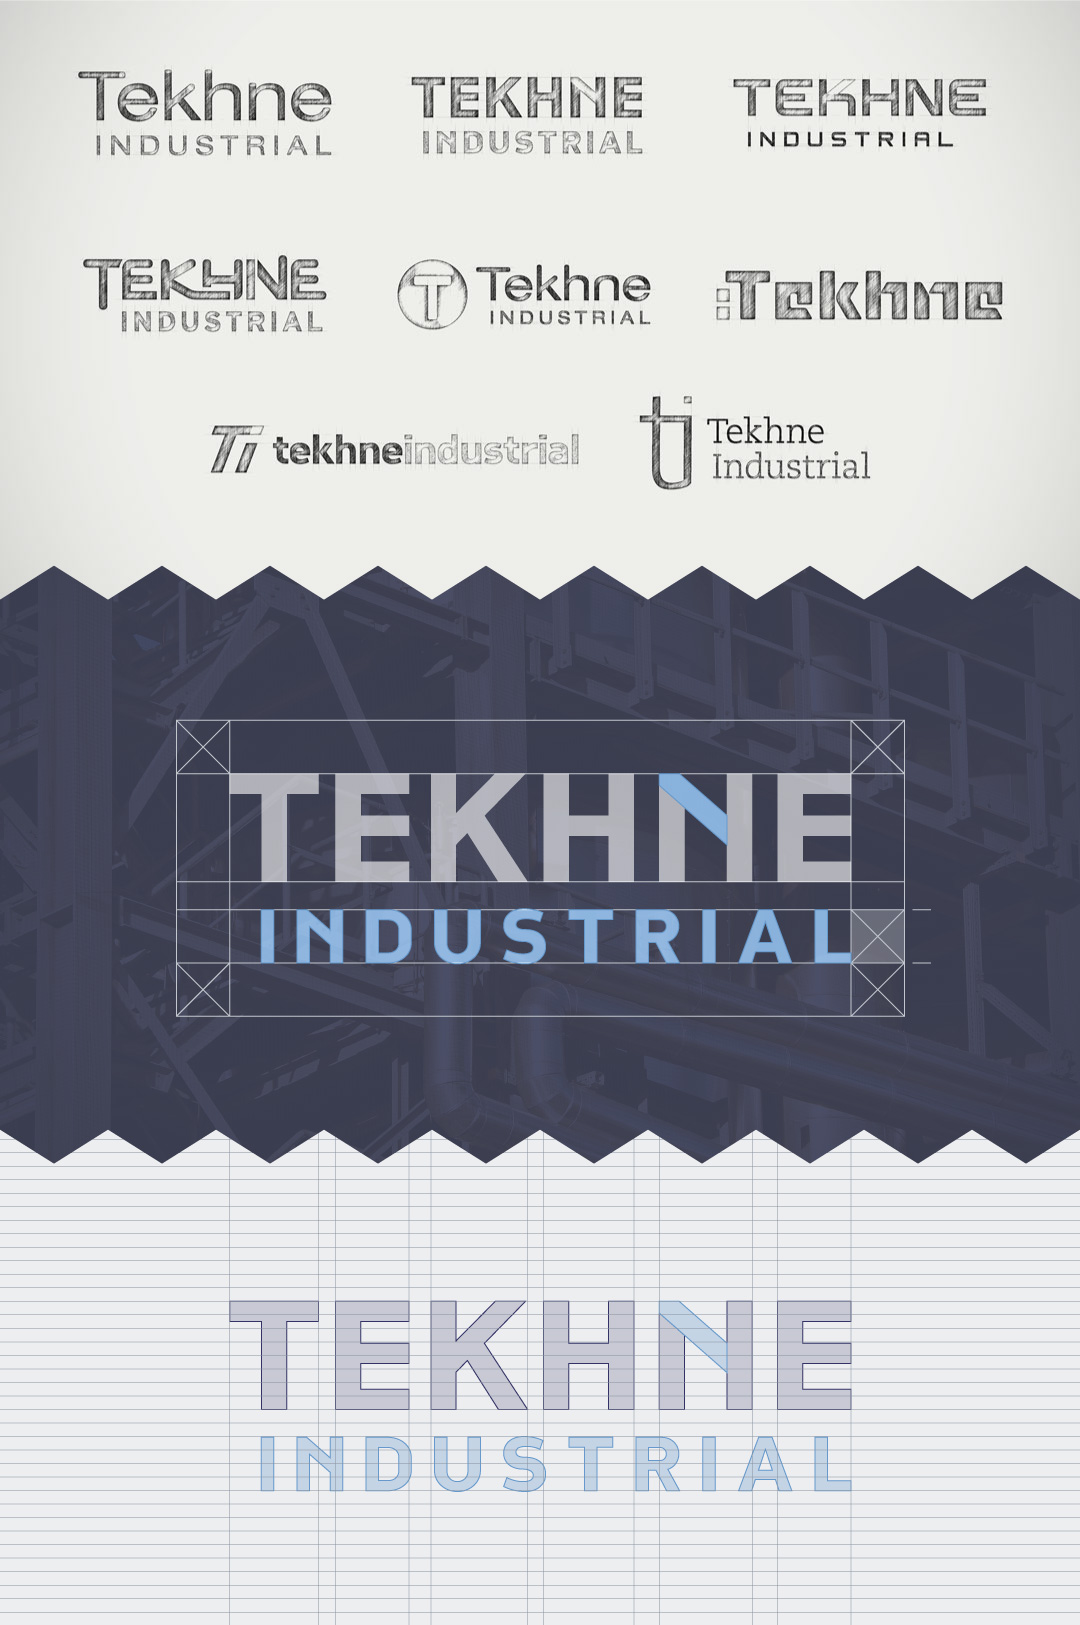 Tekhne logo development